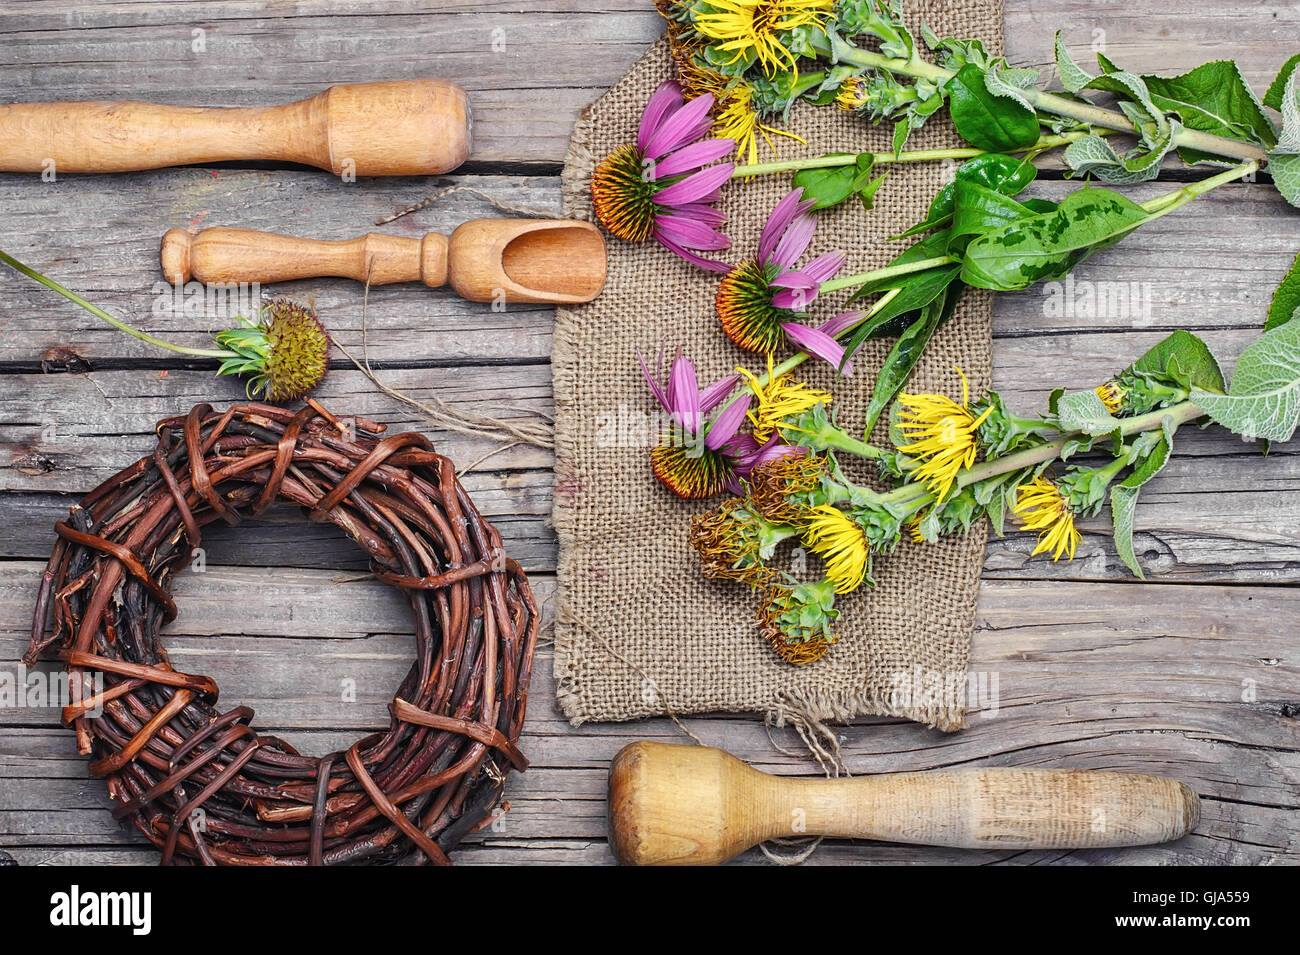 Set medicinal plant from Echinacea,elecampane and Licorice root - Stock Image